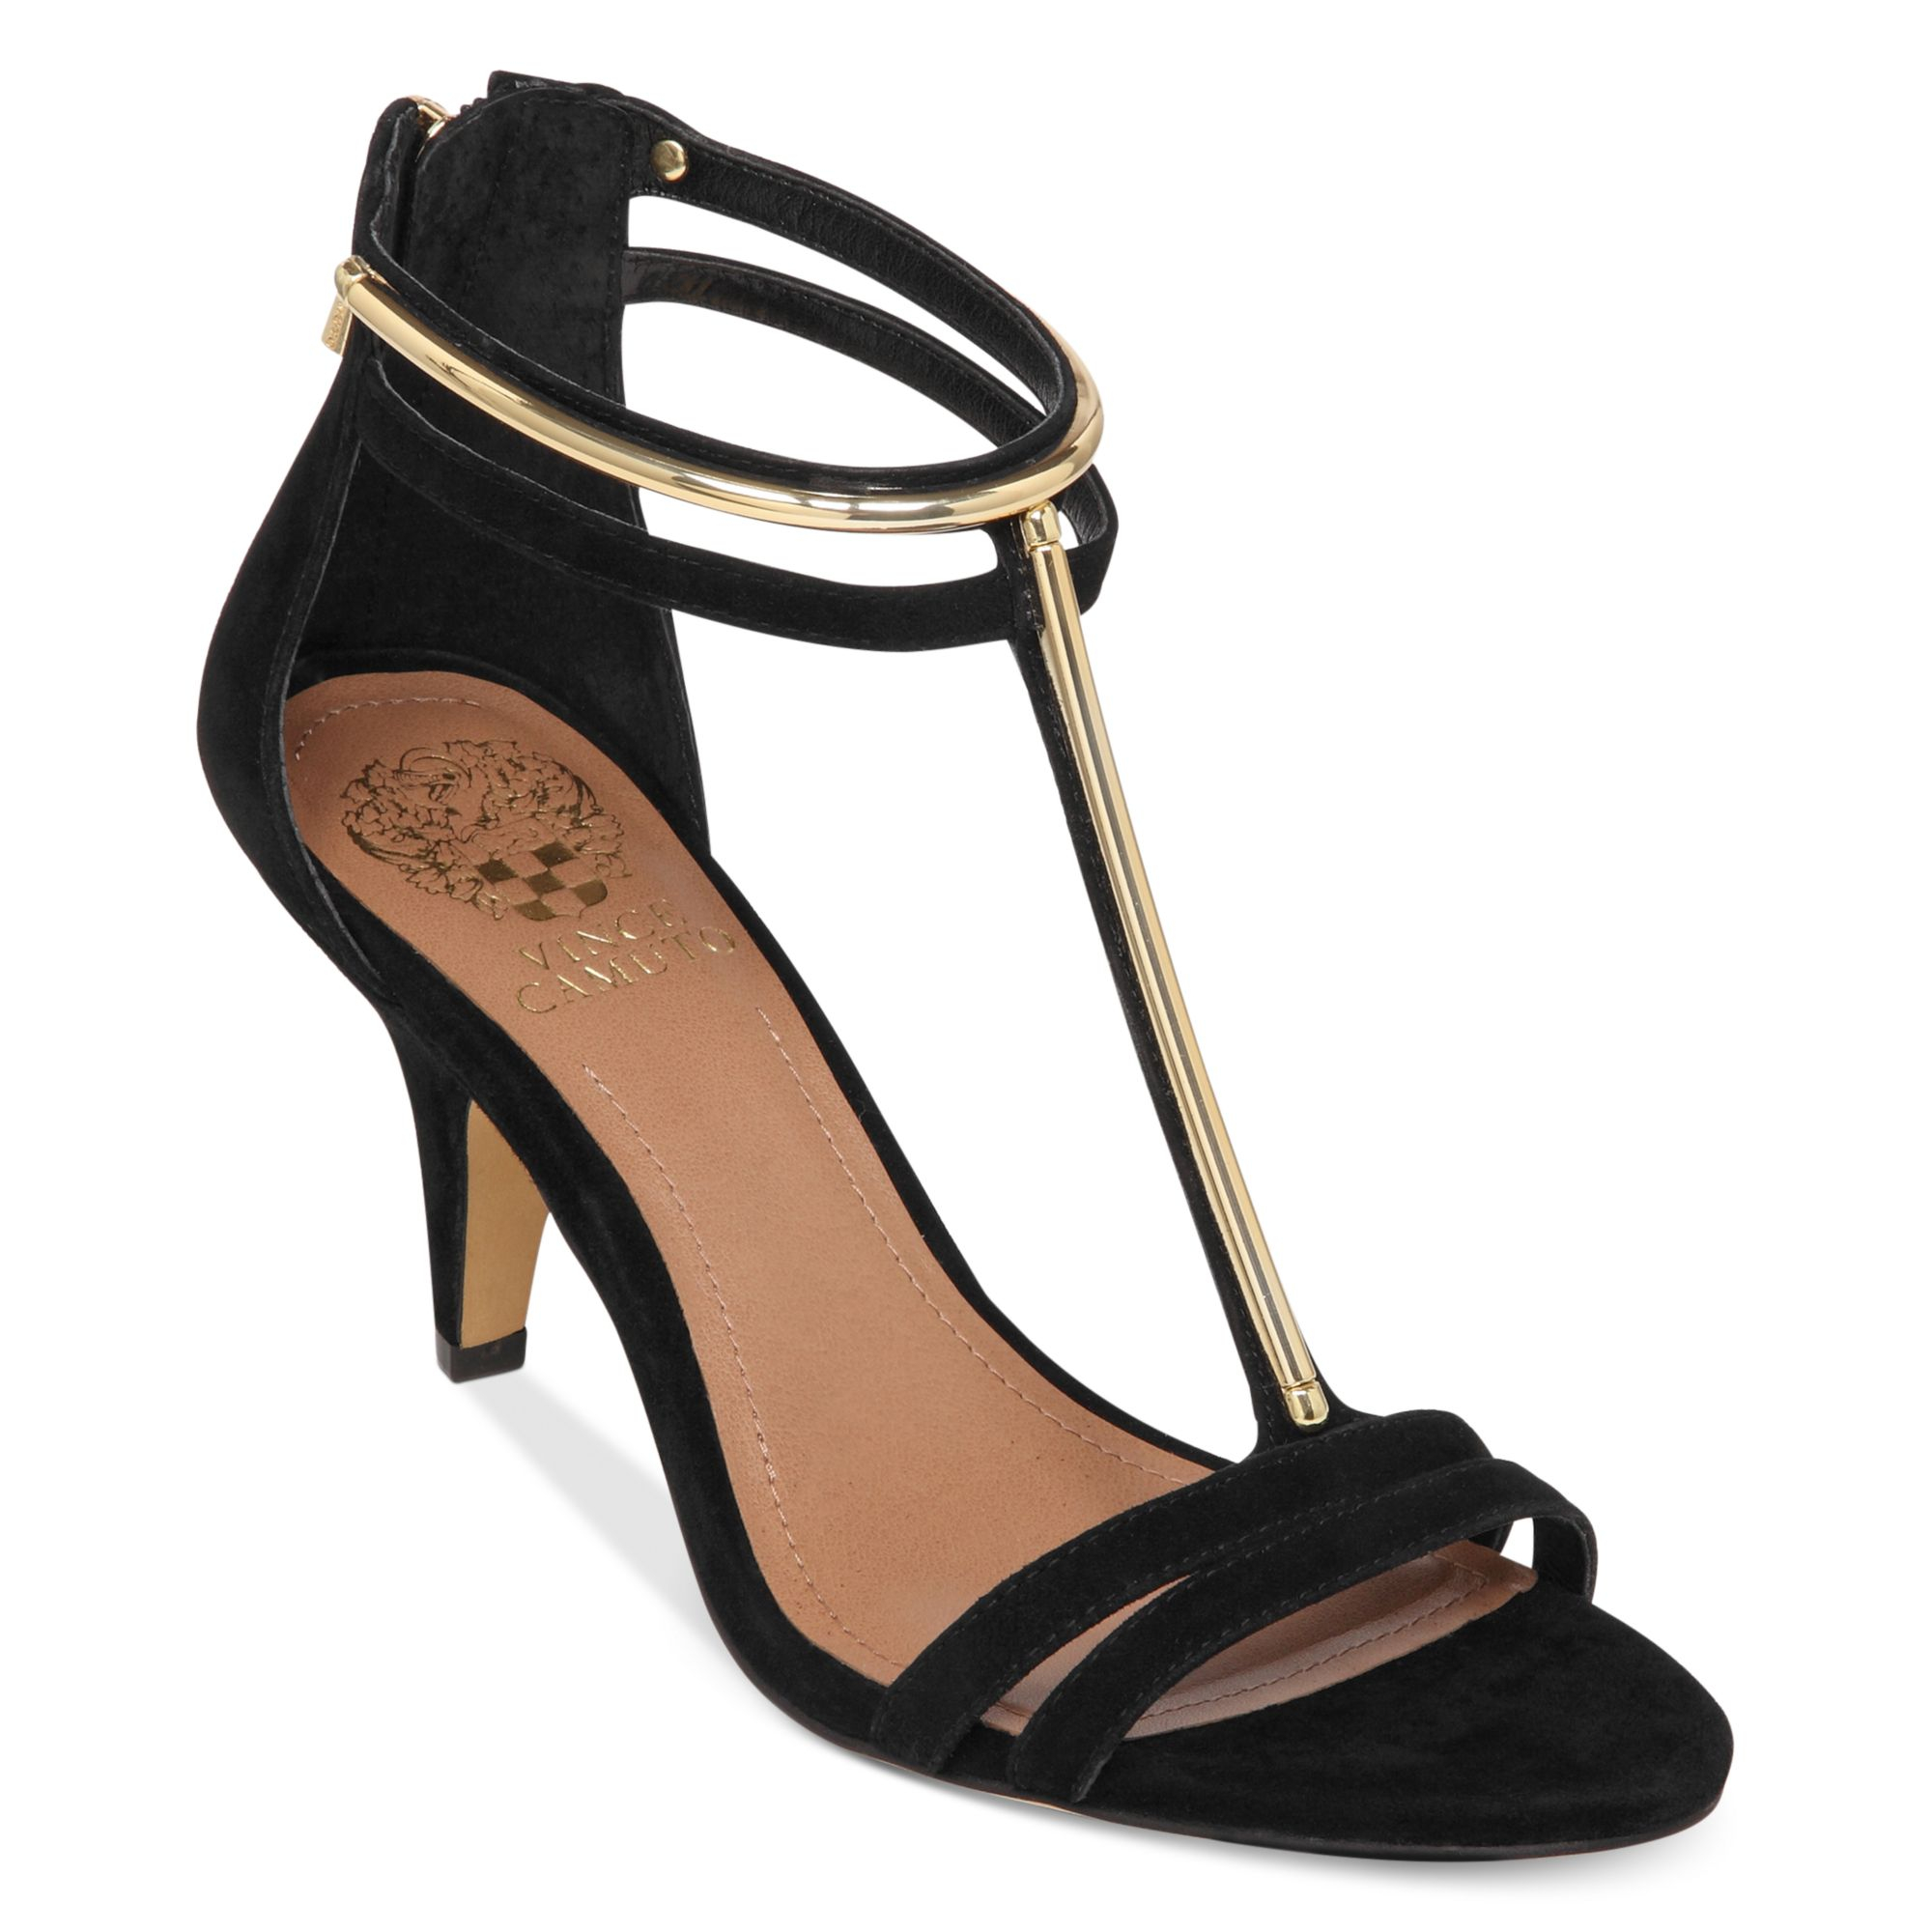 Vince Camuto Mitzy T Strap Evening Sandals In Black Black